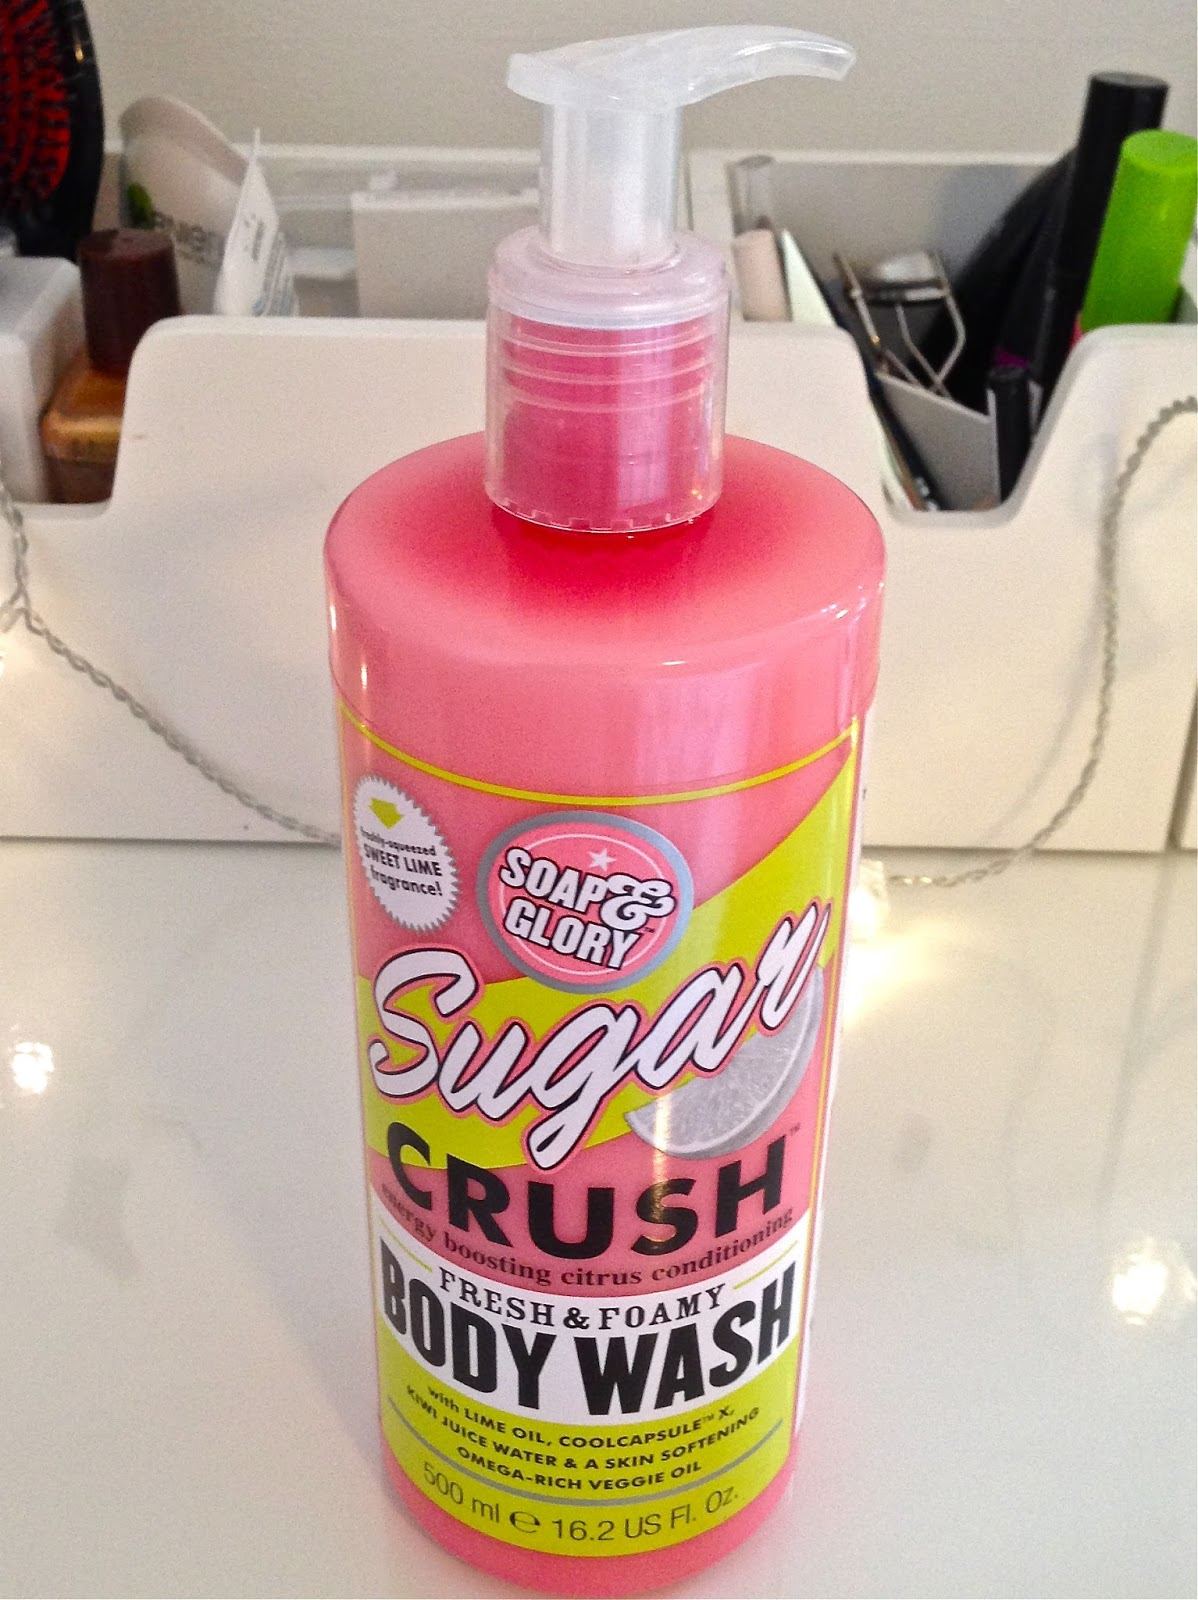 Soap & Glory Sugar crush Body Wash